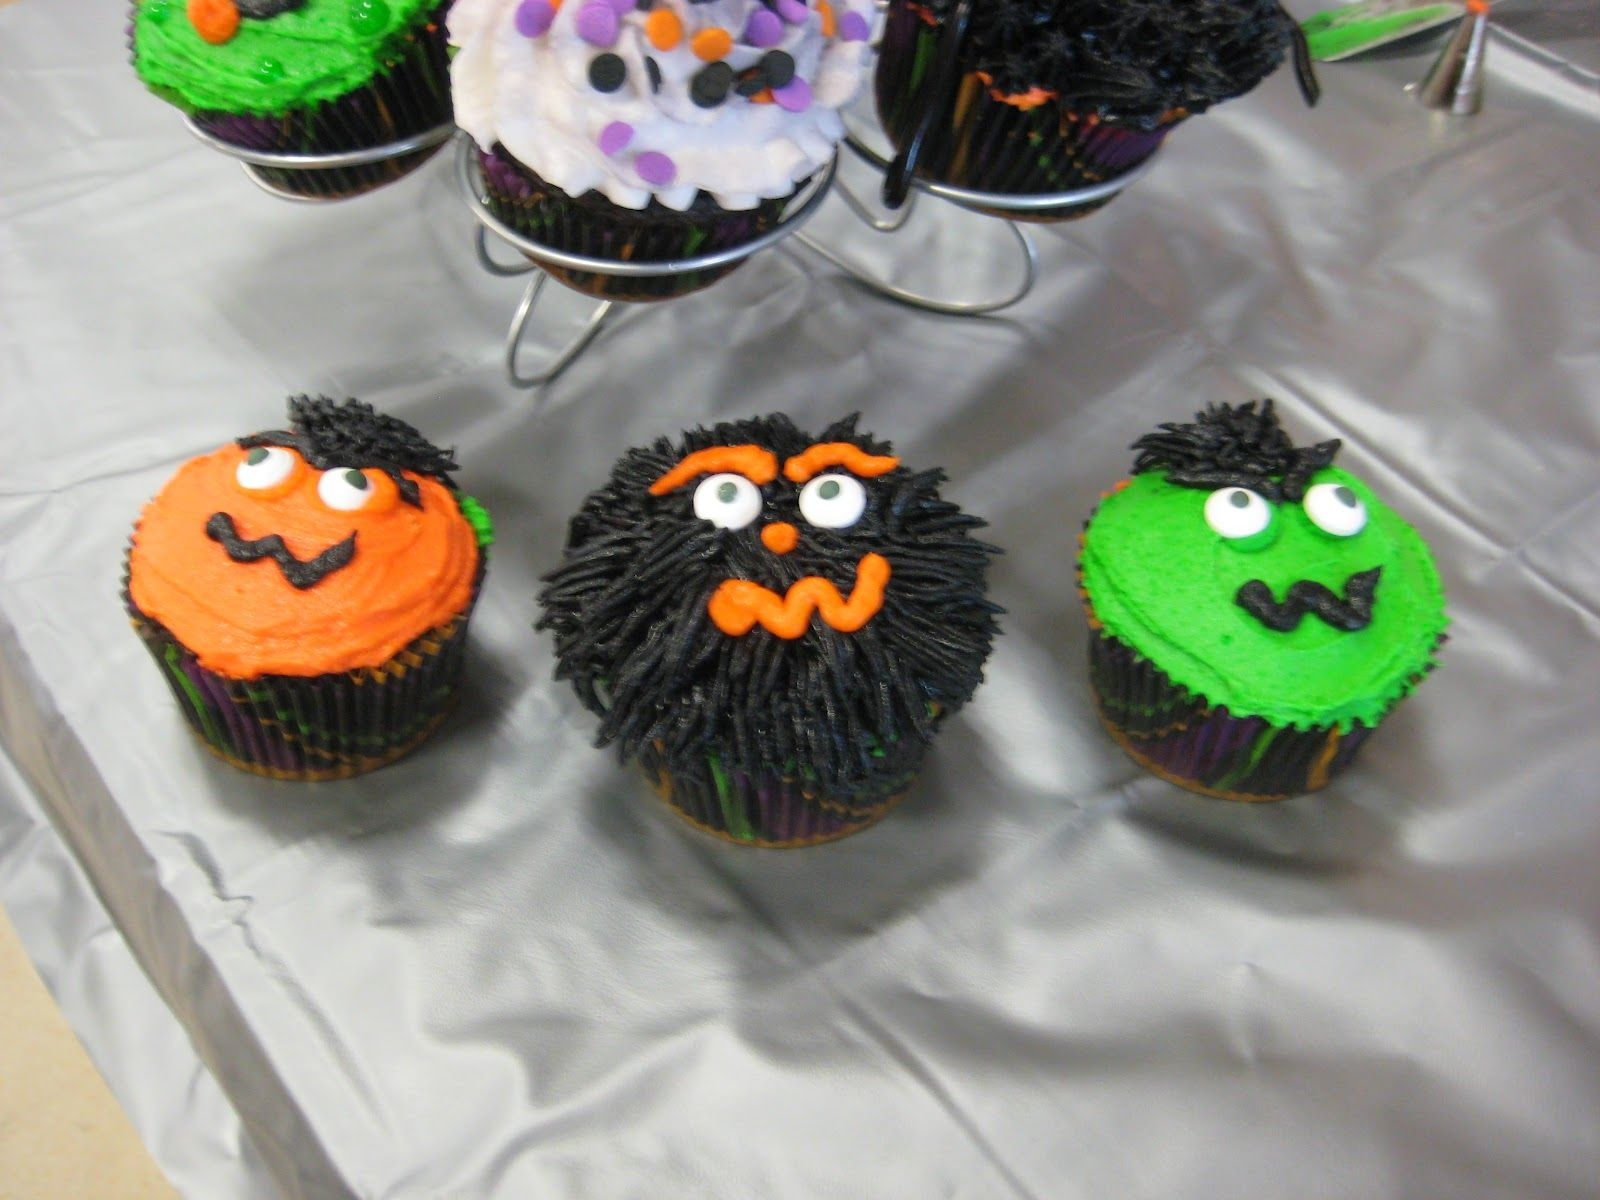 Halloween+Cupcake+Decorating+Ideas Fun Halloween Cupcake - Halloween Cake Decorating Ideas